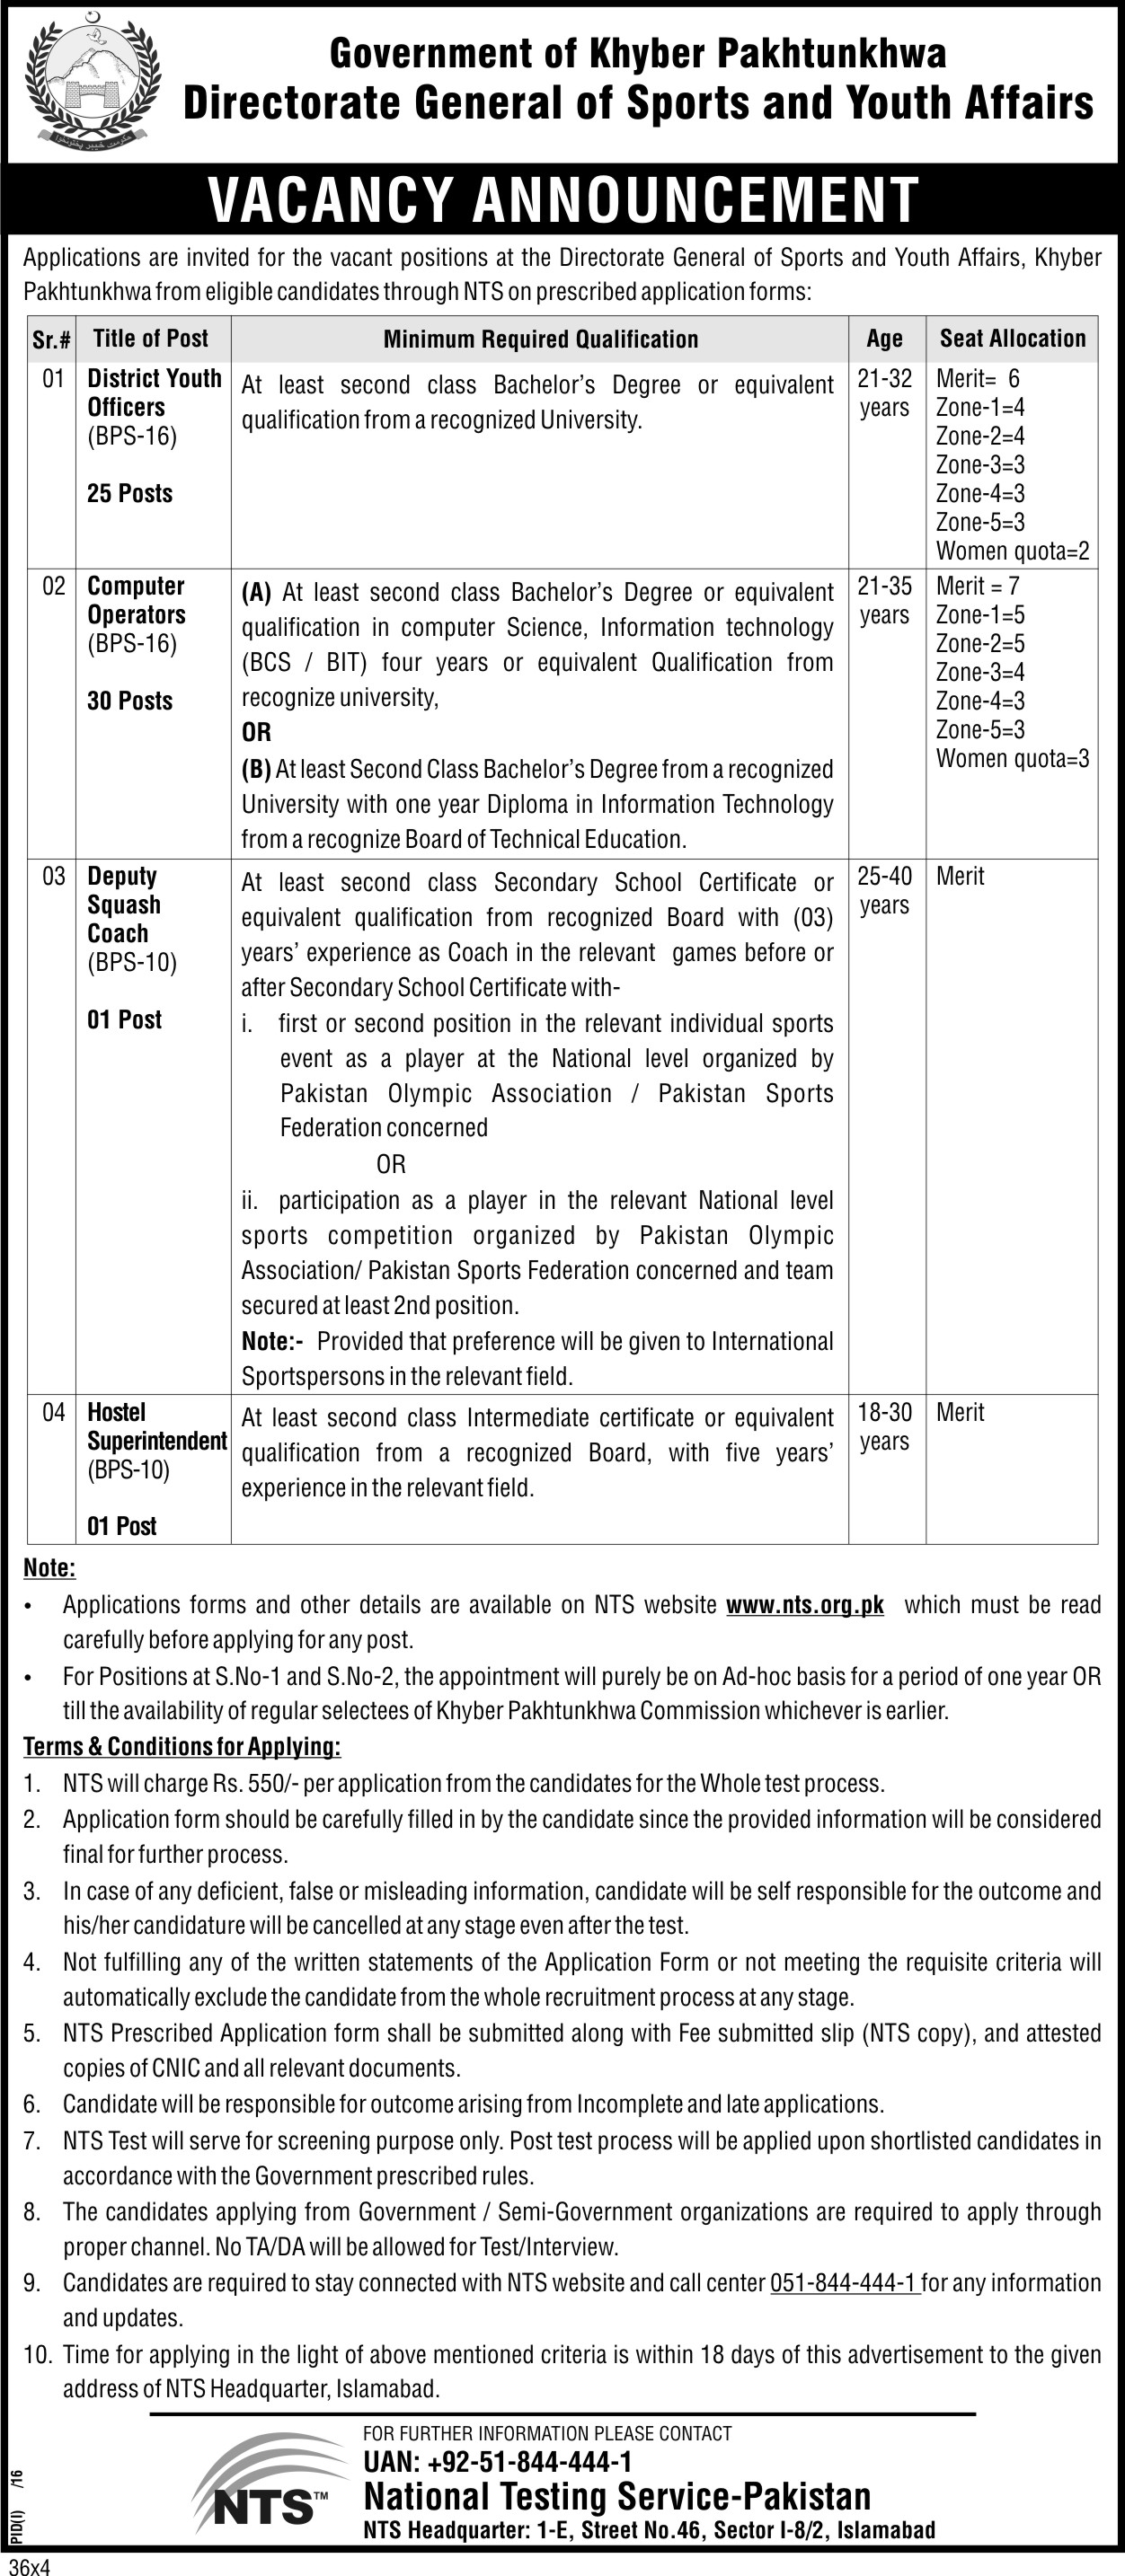 Directorate General of Sports & Youth Affairs KPK Jobs 2017 NTS Form Online